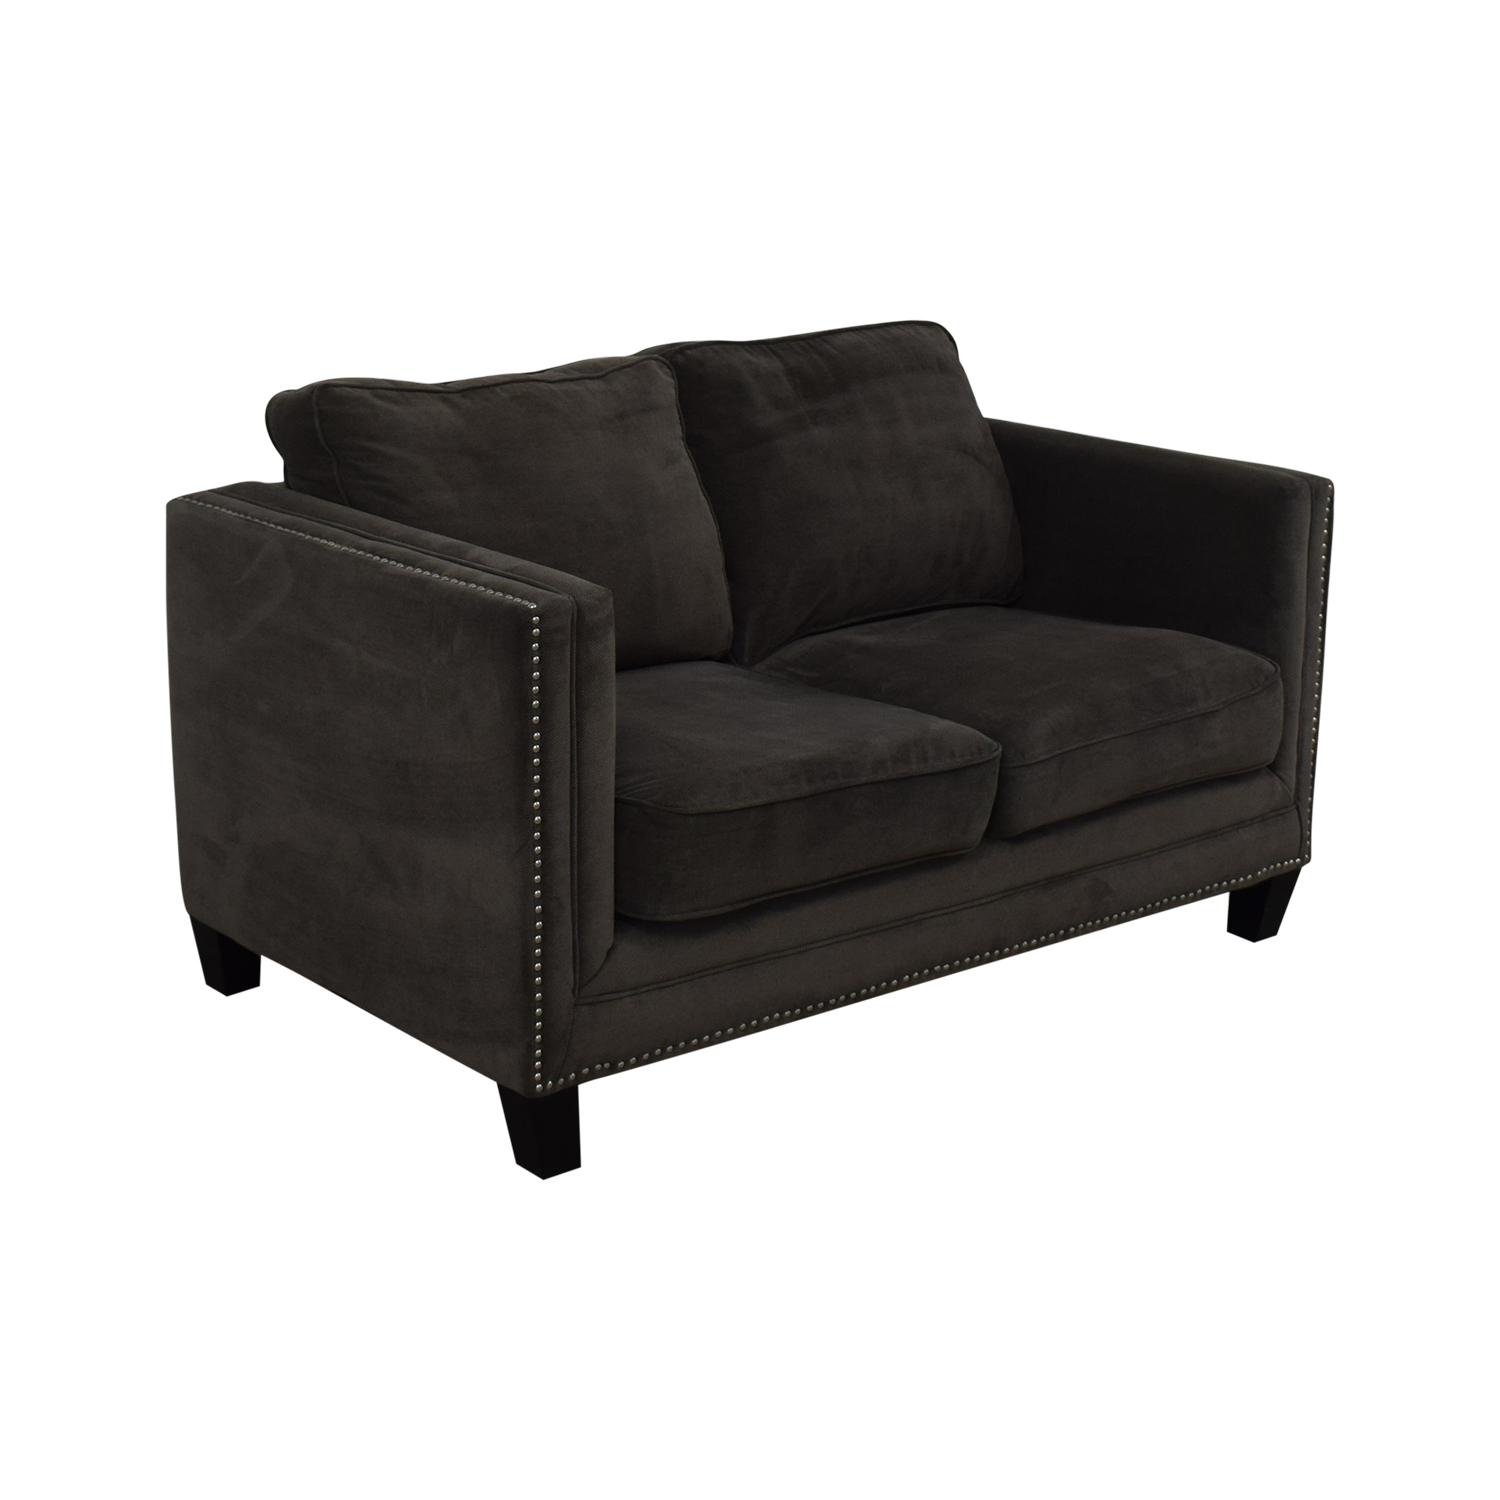 buy Emerald Home Furnishings Emerald Home Furnishings Carlton Loveseat online